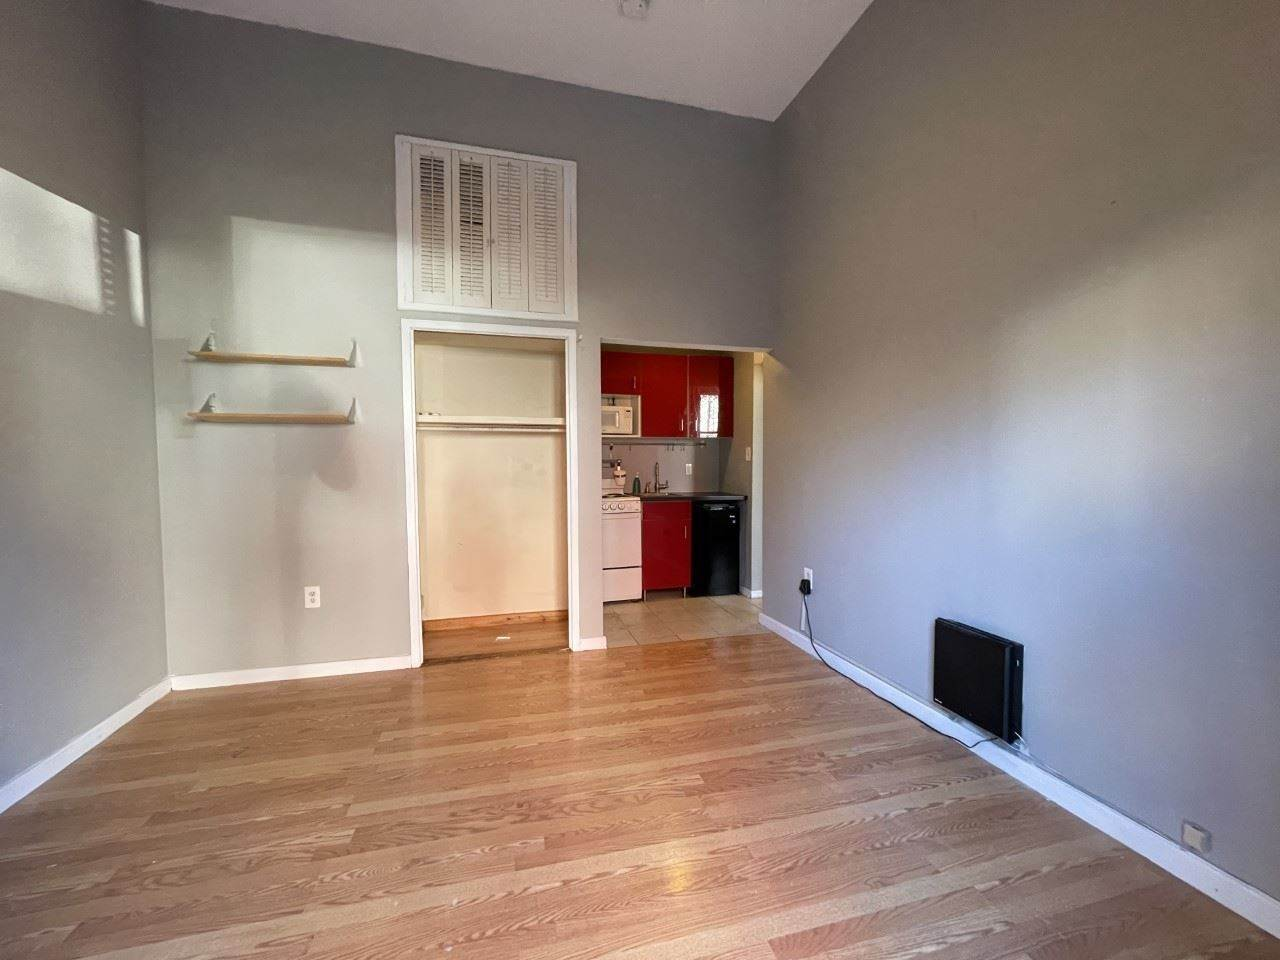 3. Single Family Home for Rent at 1145 GARDEN STREET #S1 Hoboken, New Jersey, 07030 United States